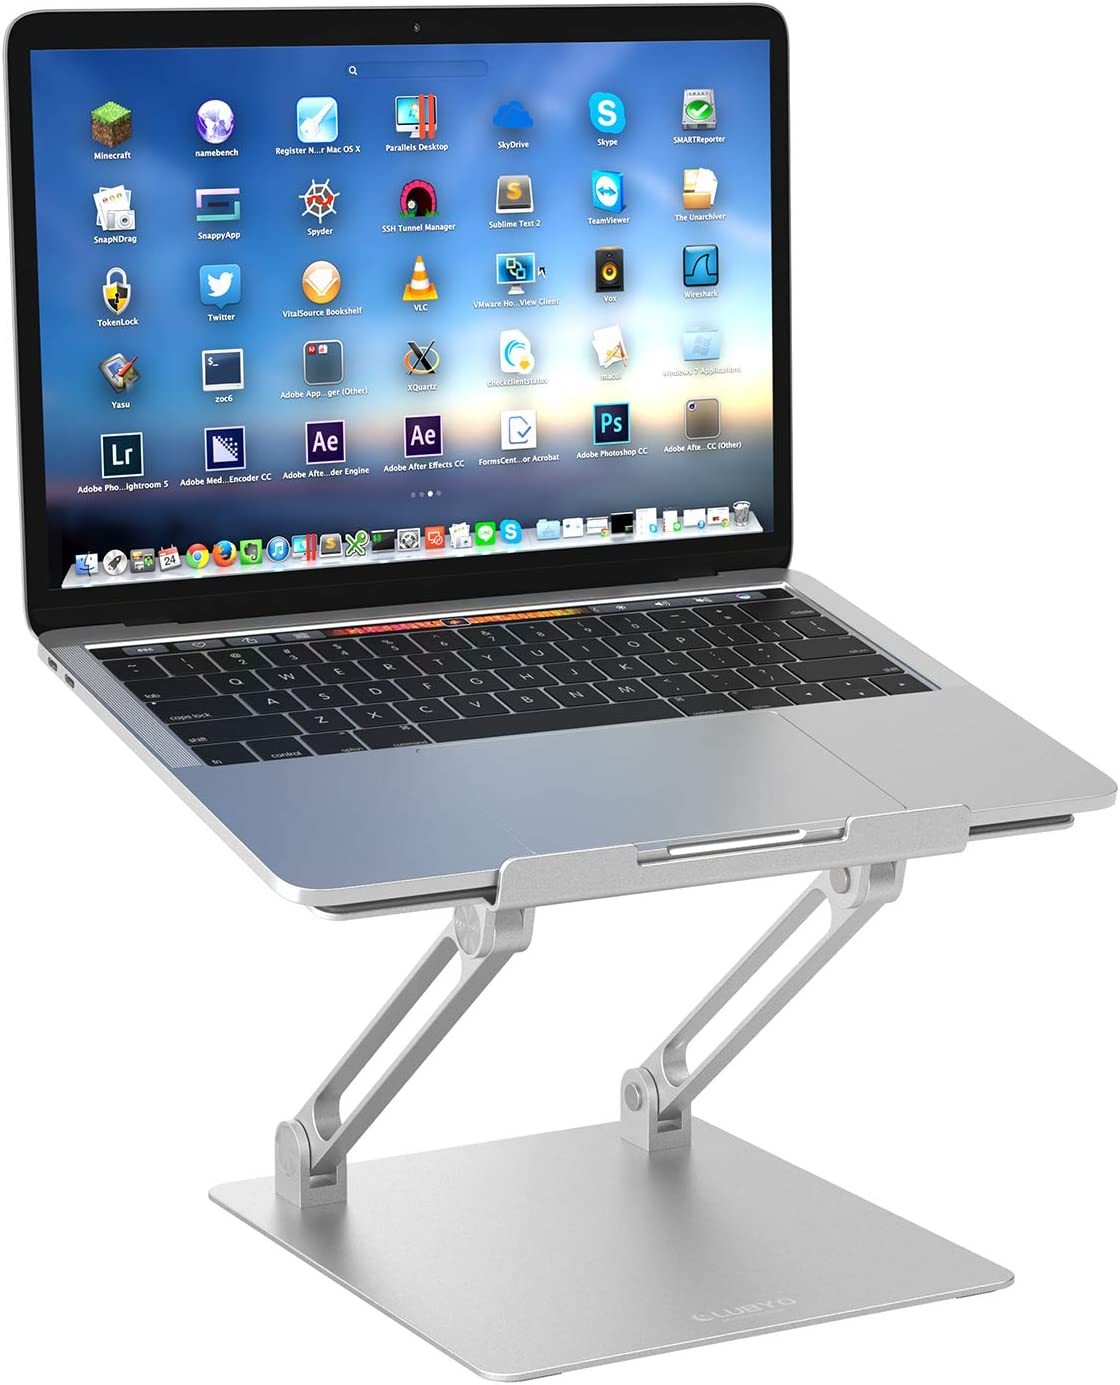 Laptop Stand for Desk, Clubyo Ergonomic Adjustable Aluminum Computer Stand, Laptop Riser Compatible with MacBook Pro 10-17 Inches Laptops